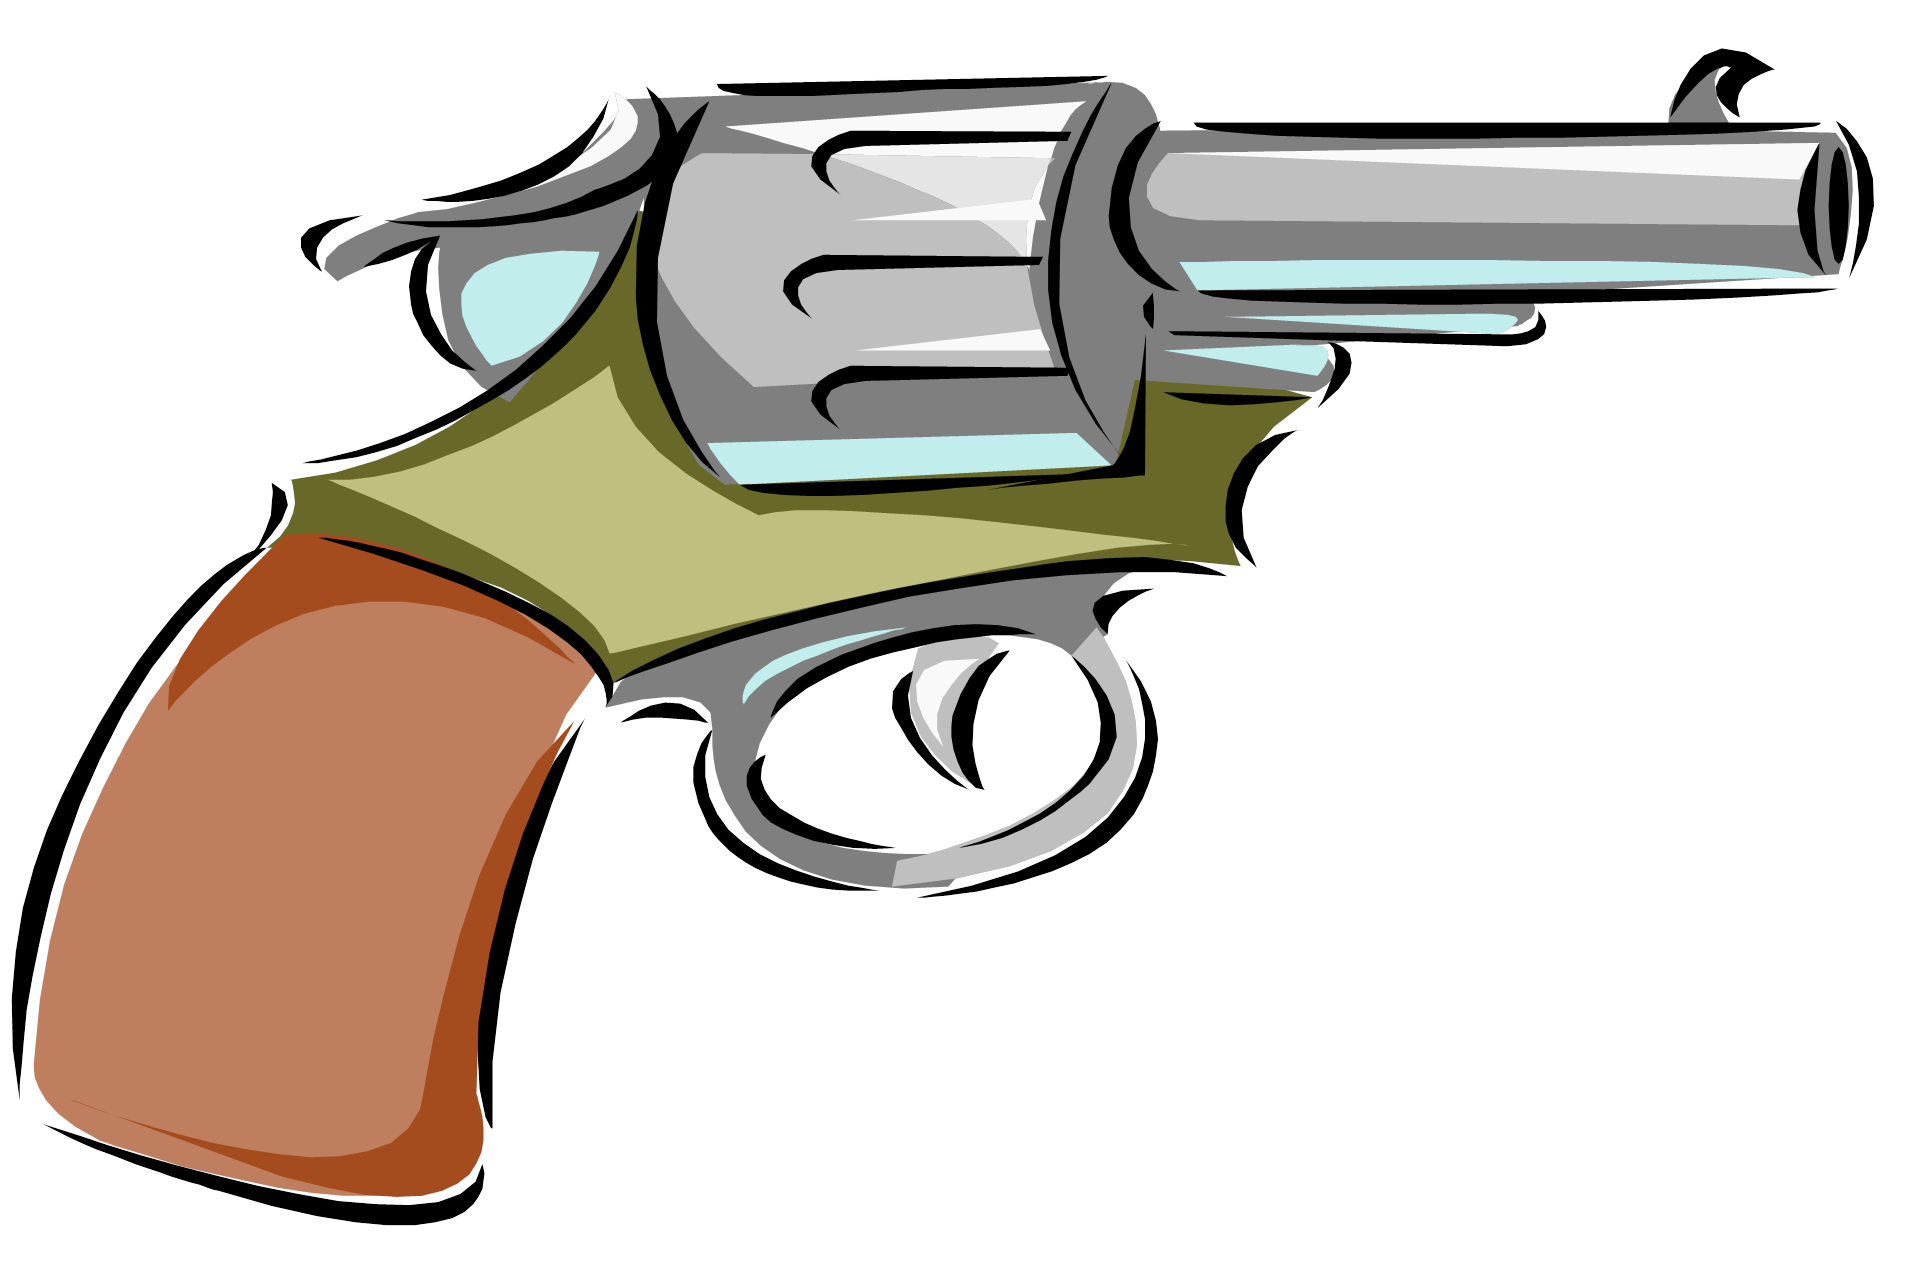 clip art freeuse stock Rifle clipart antique rifle. Cons position if you.